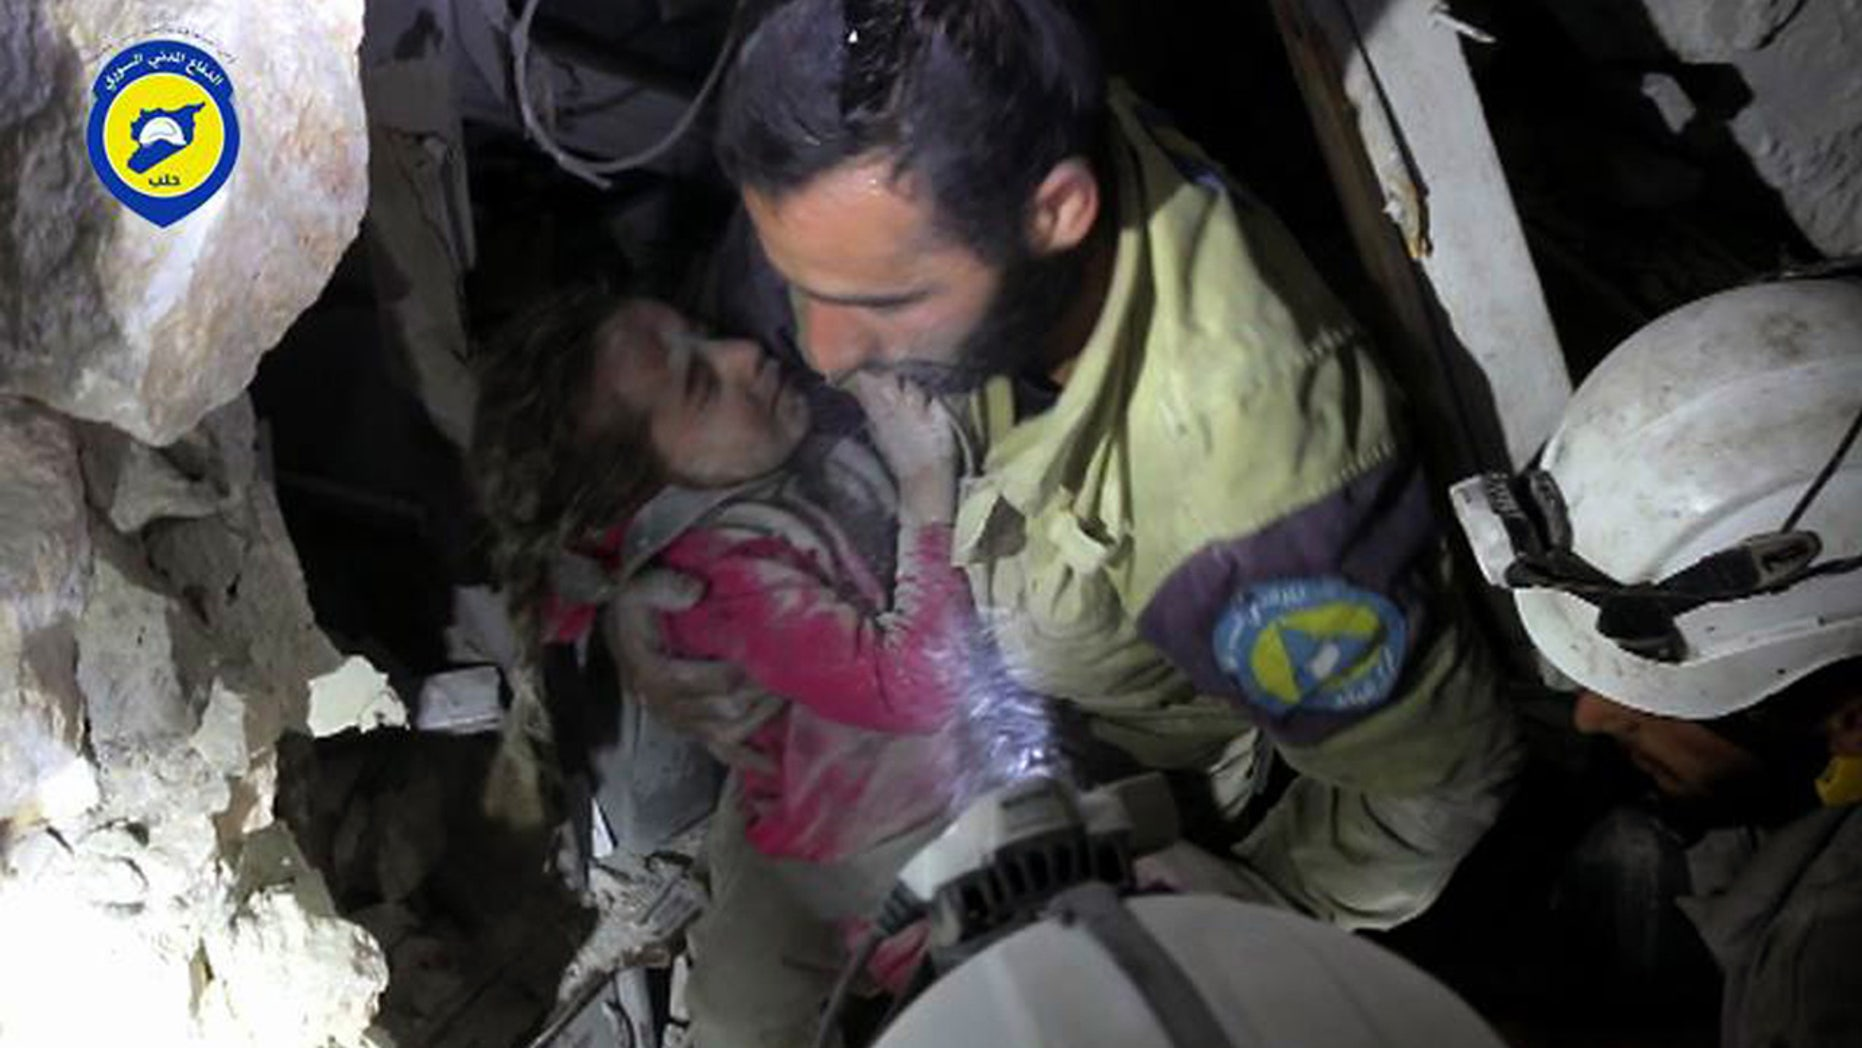 Sept. 28, 2016: This photo provided by the Syrian Civil Defense group known as the White Helmets shows a Civil Defense worker carrying Ghazal Akhtarini from under the rubble after airstrikes hit the al-Shaar neighborhood in Aleppo, Syria.